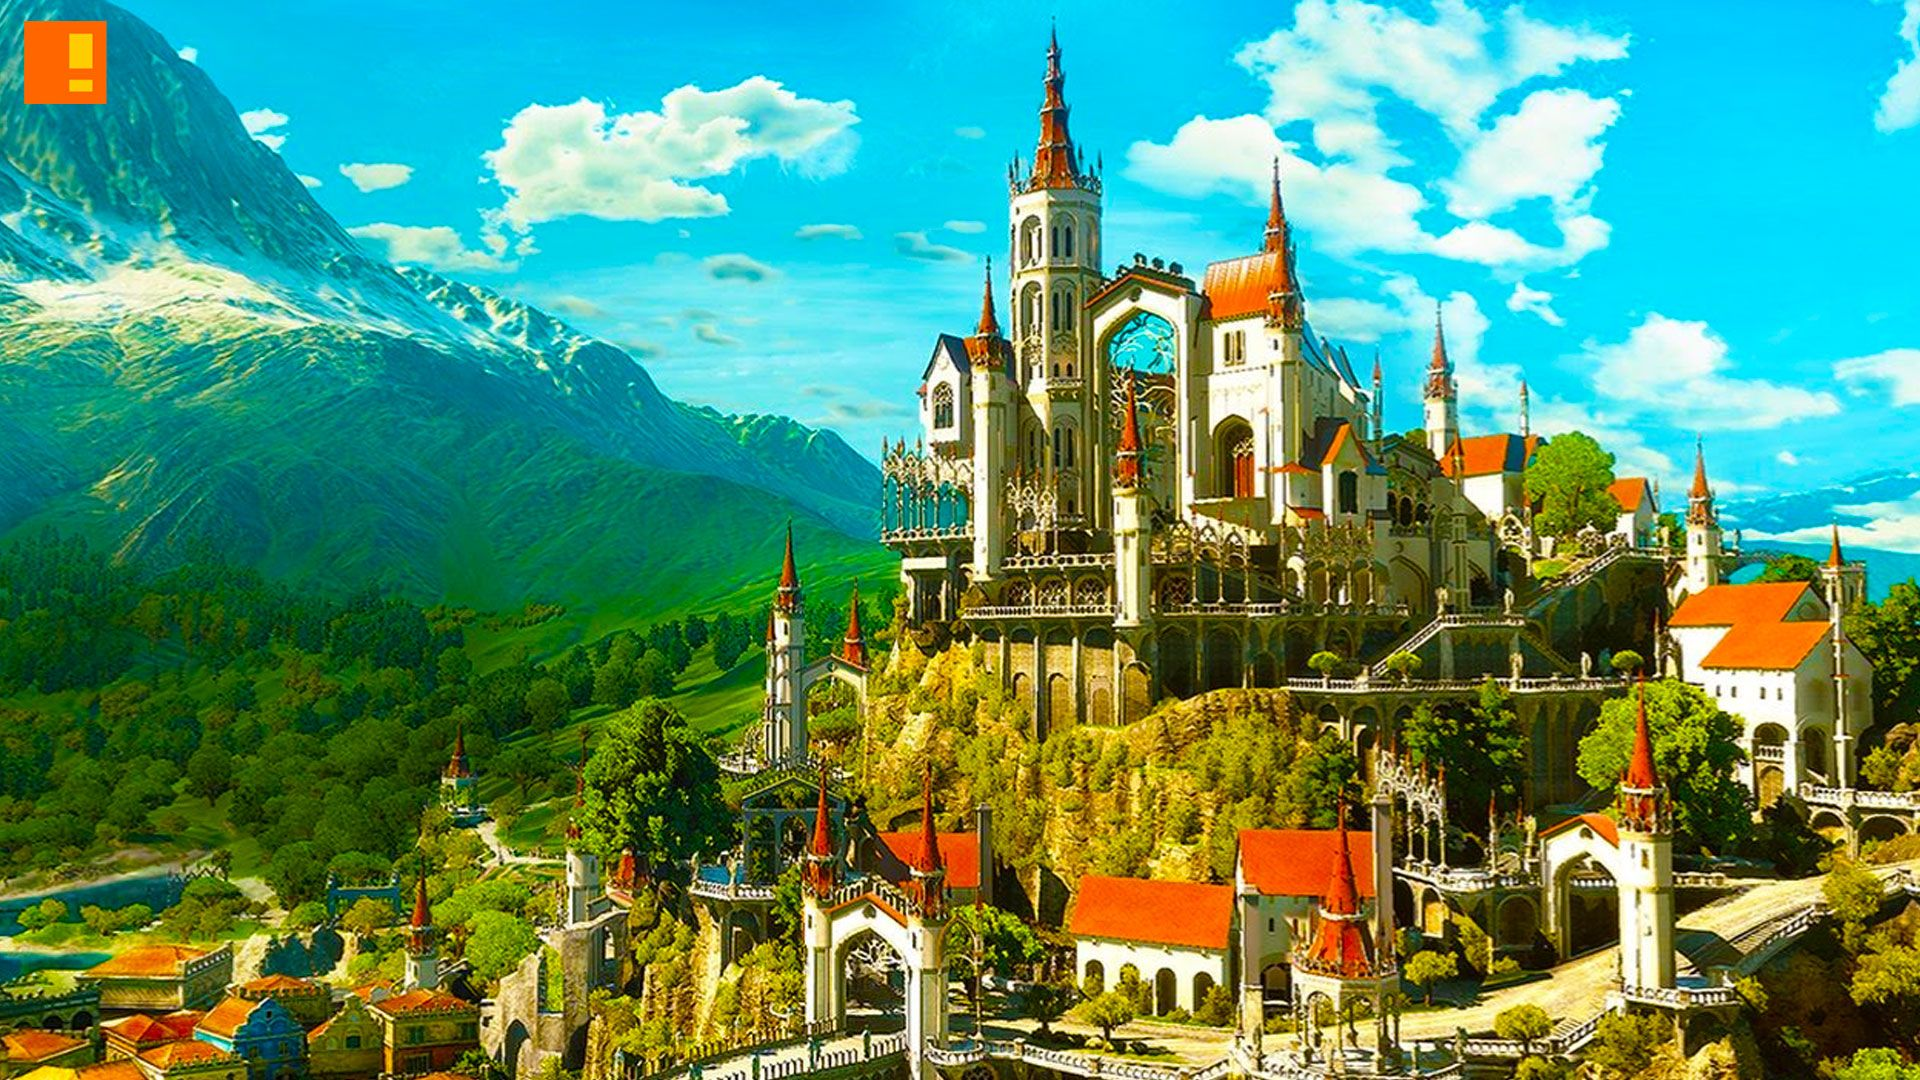 Witcher 3 Wallpapers Blood And Wine Bestpicture1org